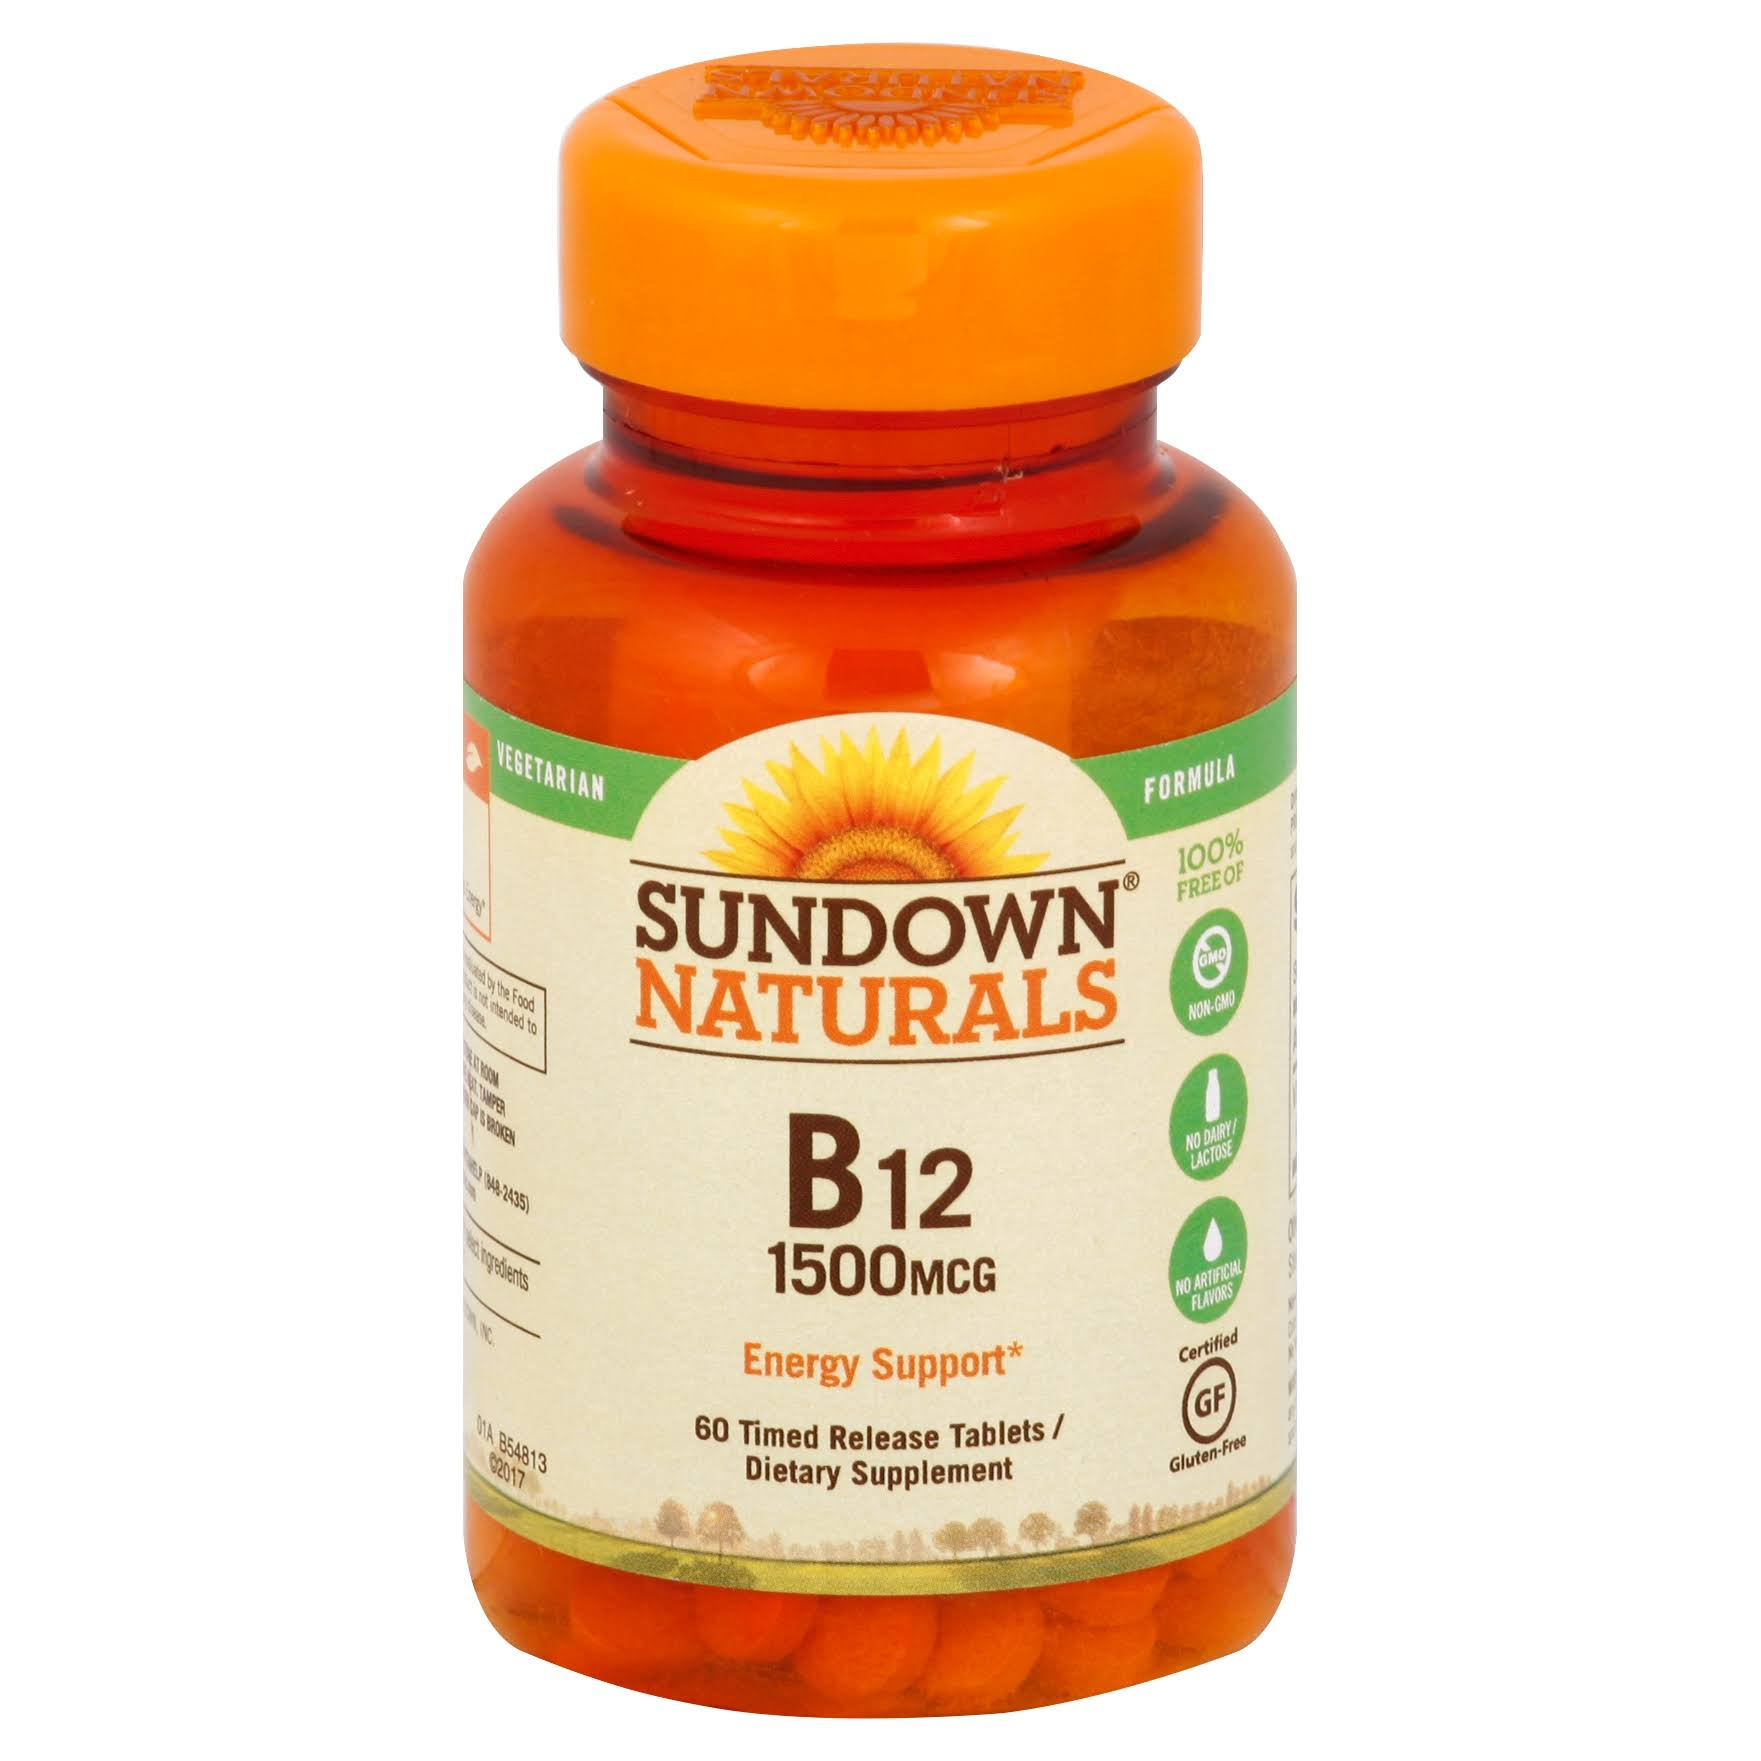 Sundown Naturals B12 Dietary Supplement - 1500mcg, x60